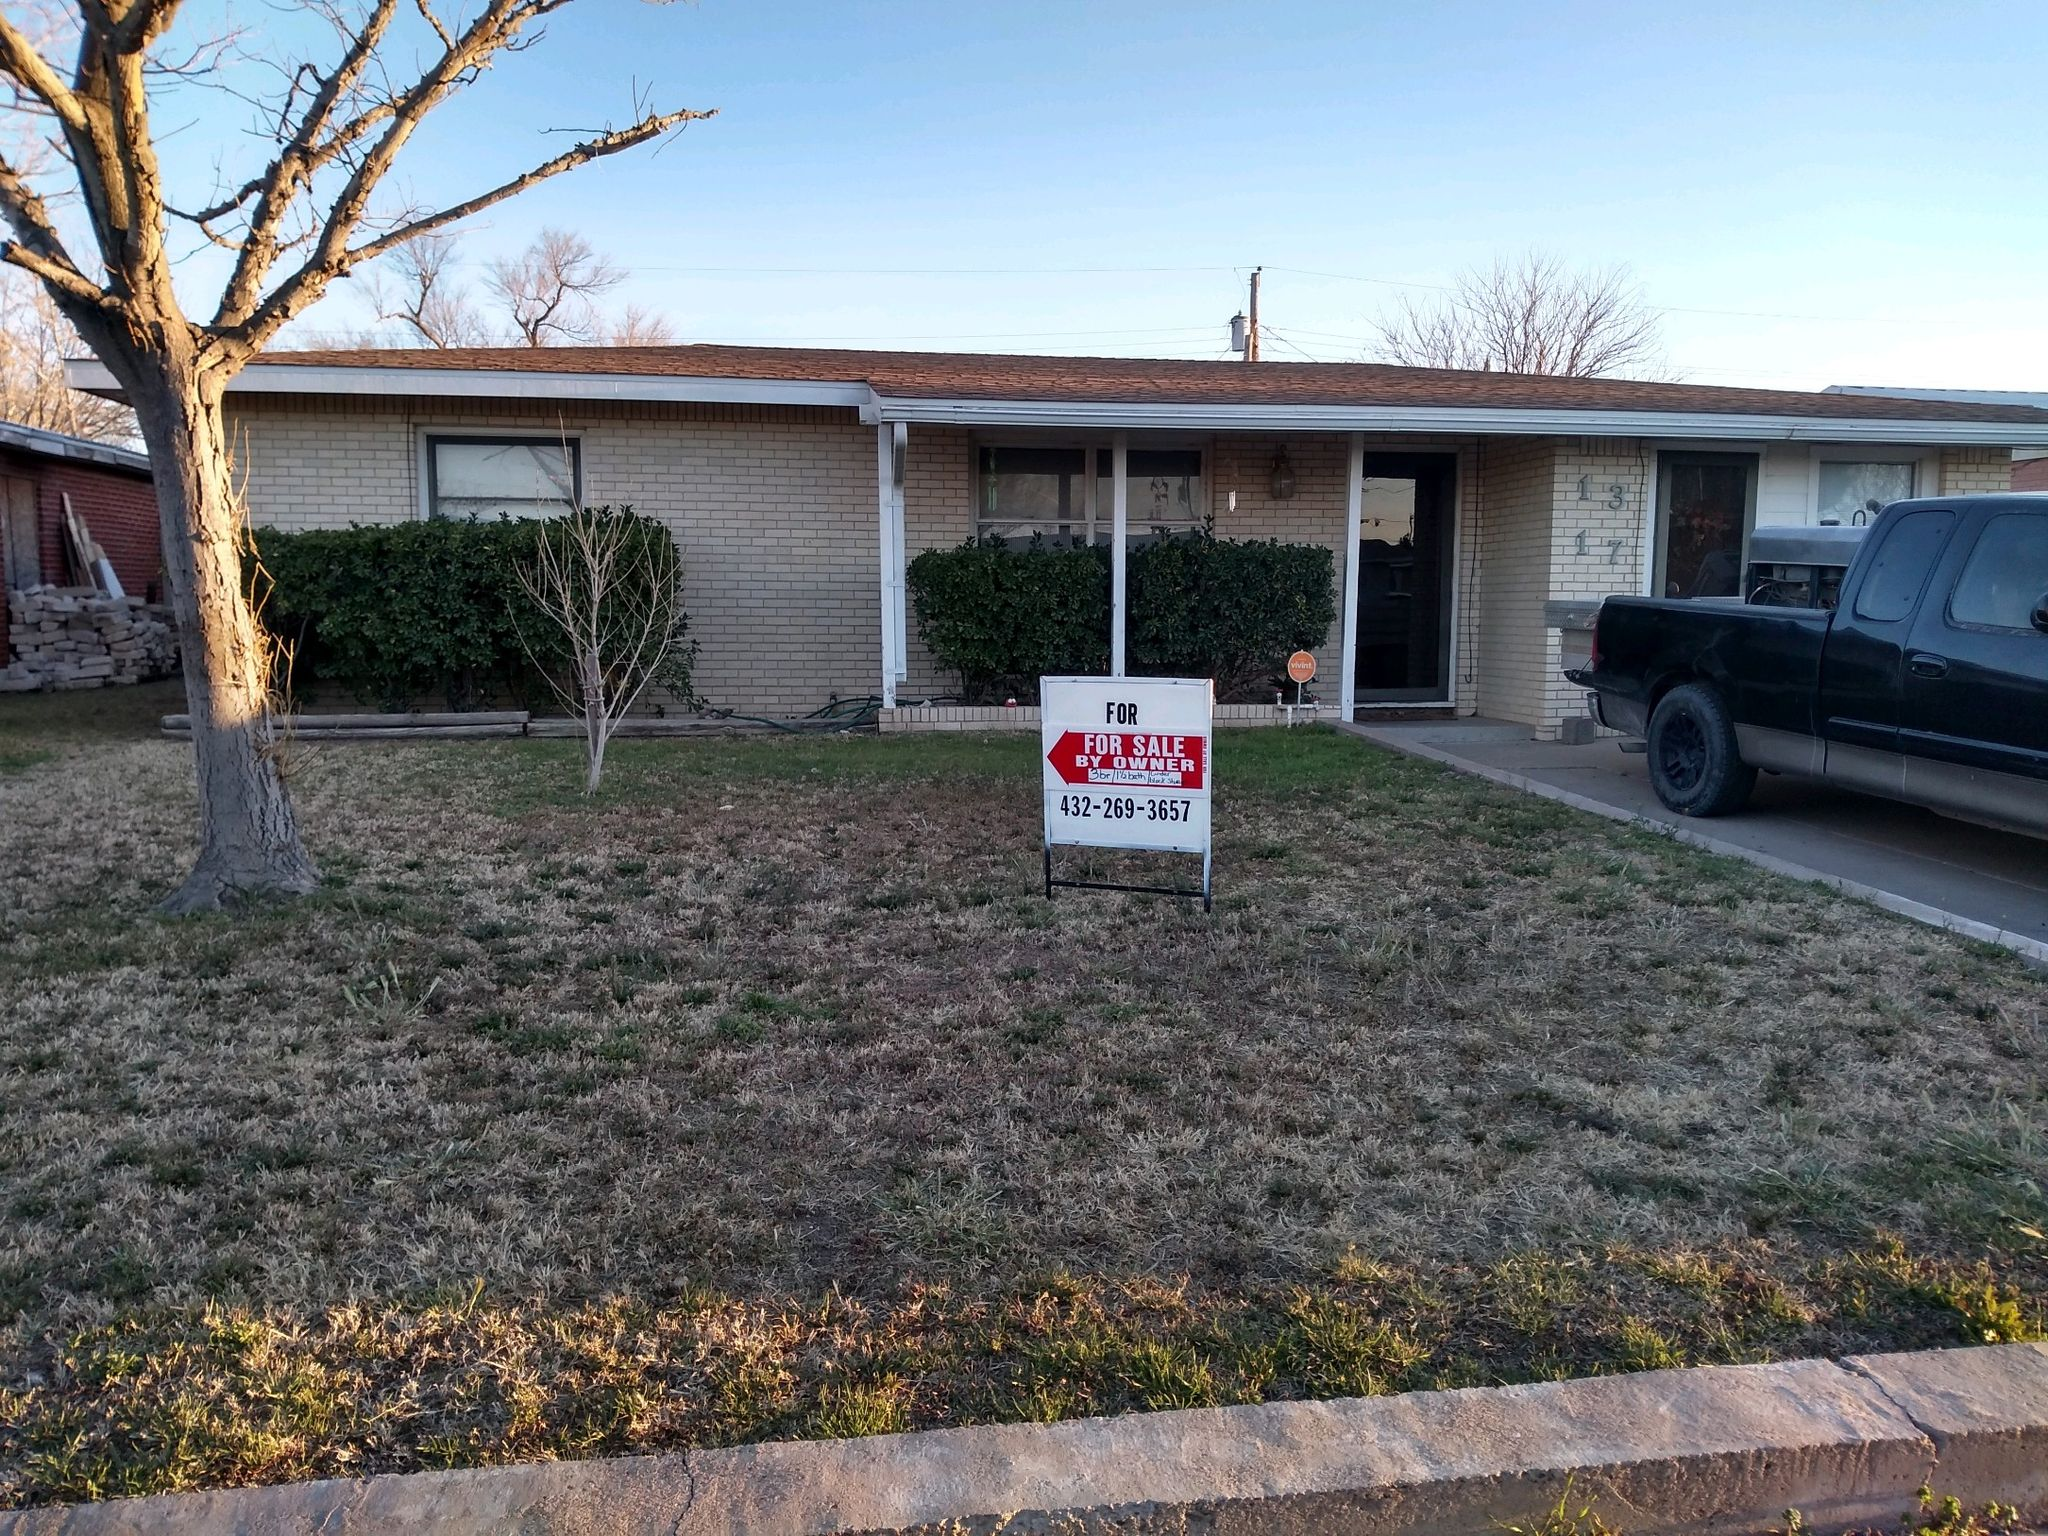 1317 W 20th St, Odessa, TX 79763 - 3 Bed, 2 Bath Single-Family Home - MLS#  114690 - 26 Photos | Trulia